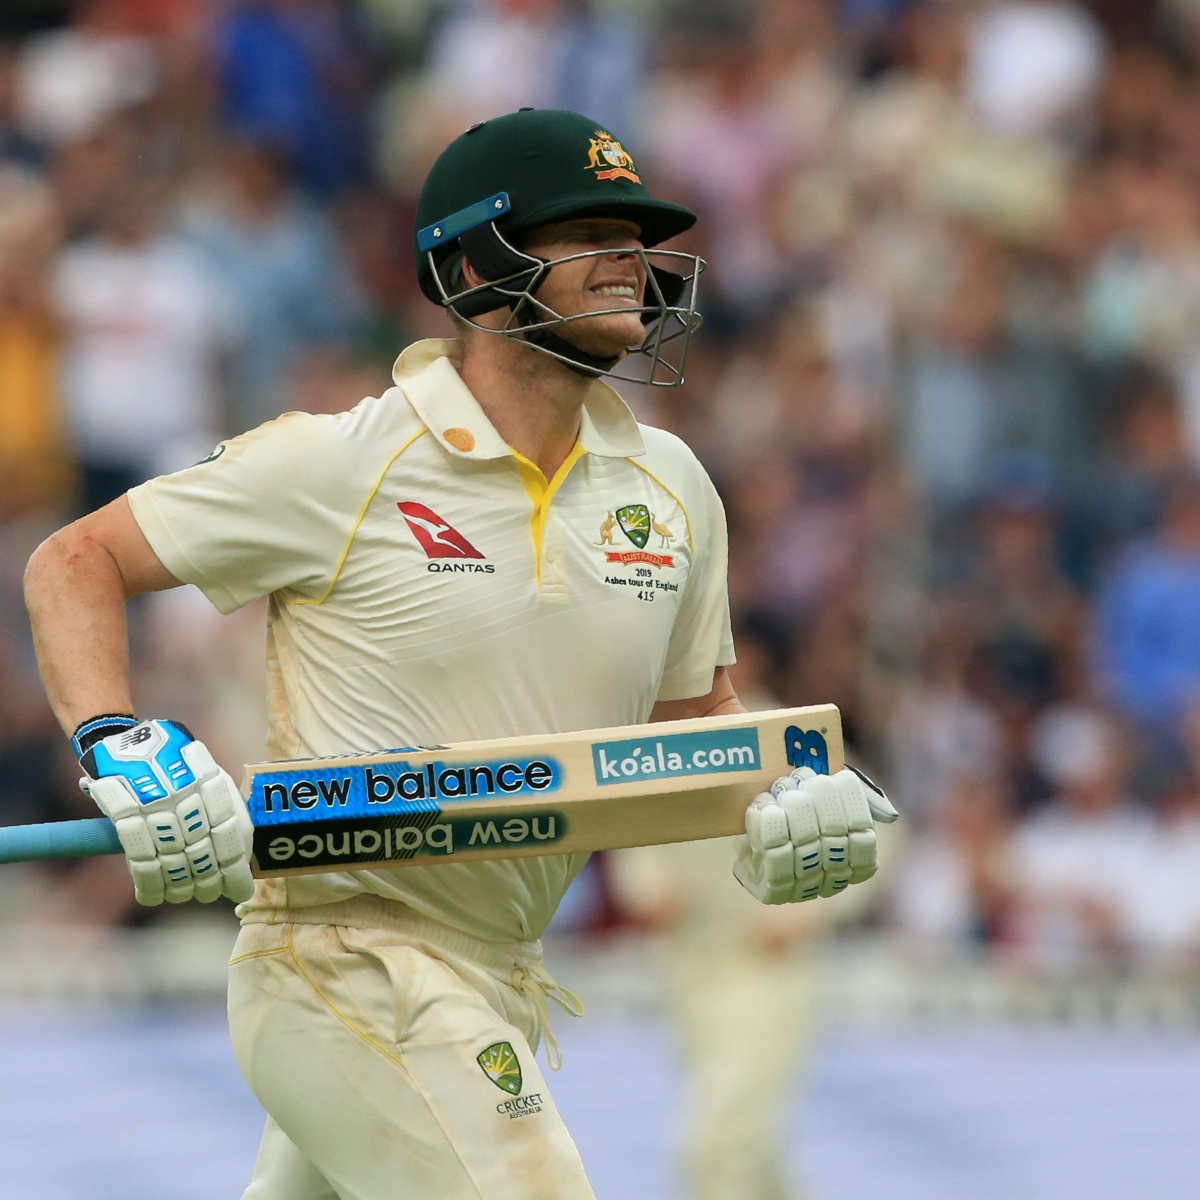 First Ashes Test: Cricketing fraternity applauds Steven Smith's incredible ton